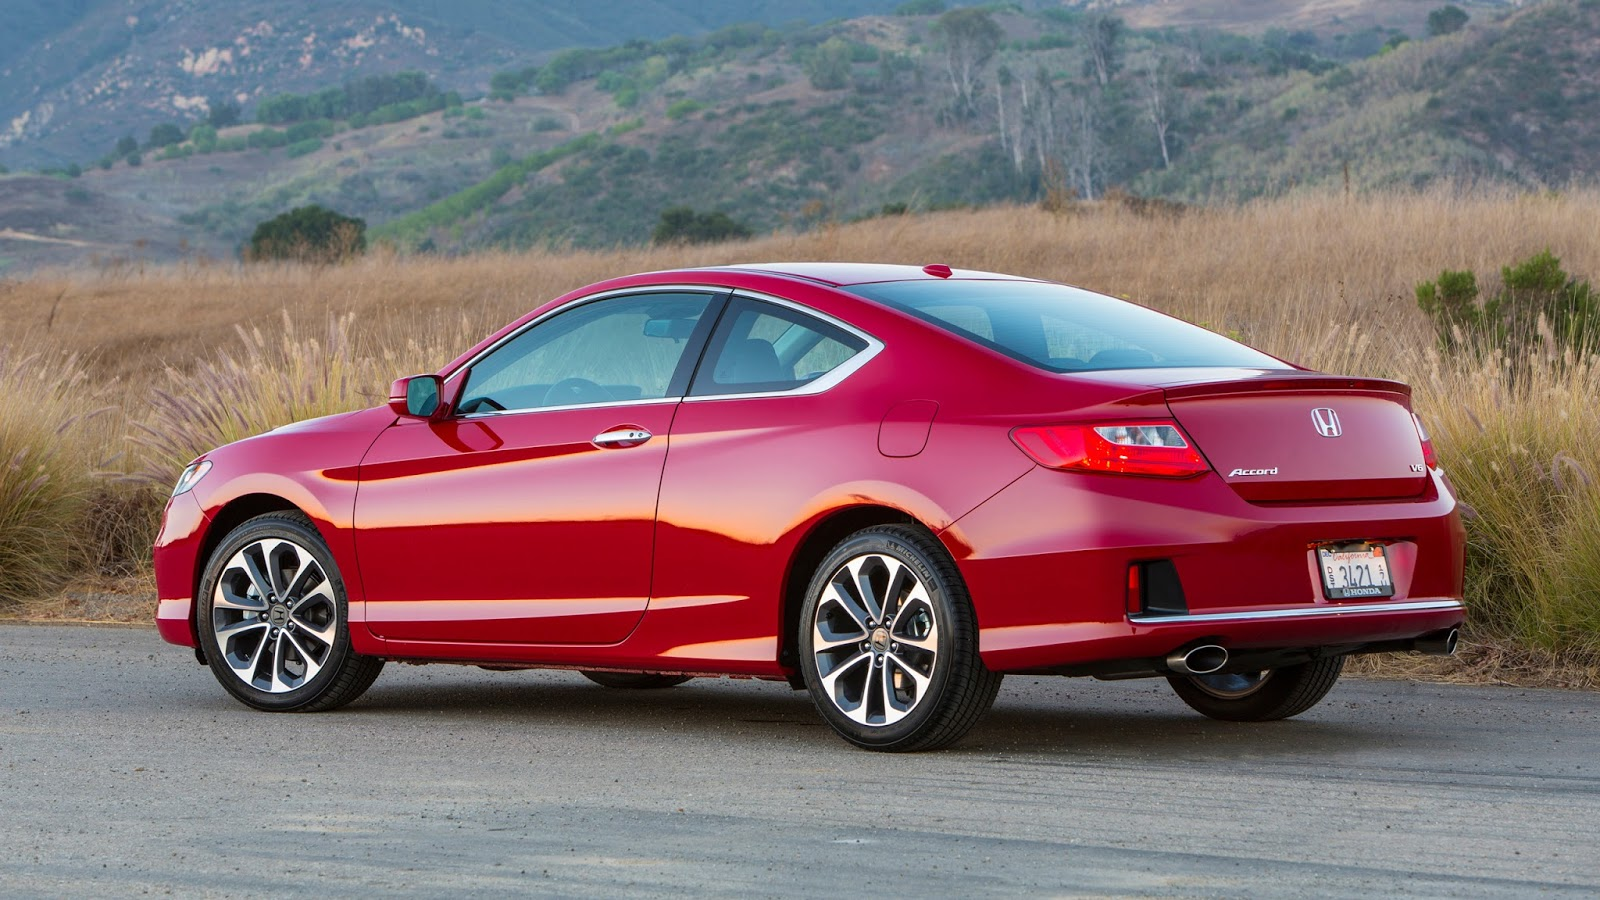 The Accord V 6 Has An Estimated EPA Fuel Economy Rating Of 21/34/251 Mpg  City/hwy/combined (Sedan 6AT).